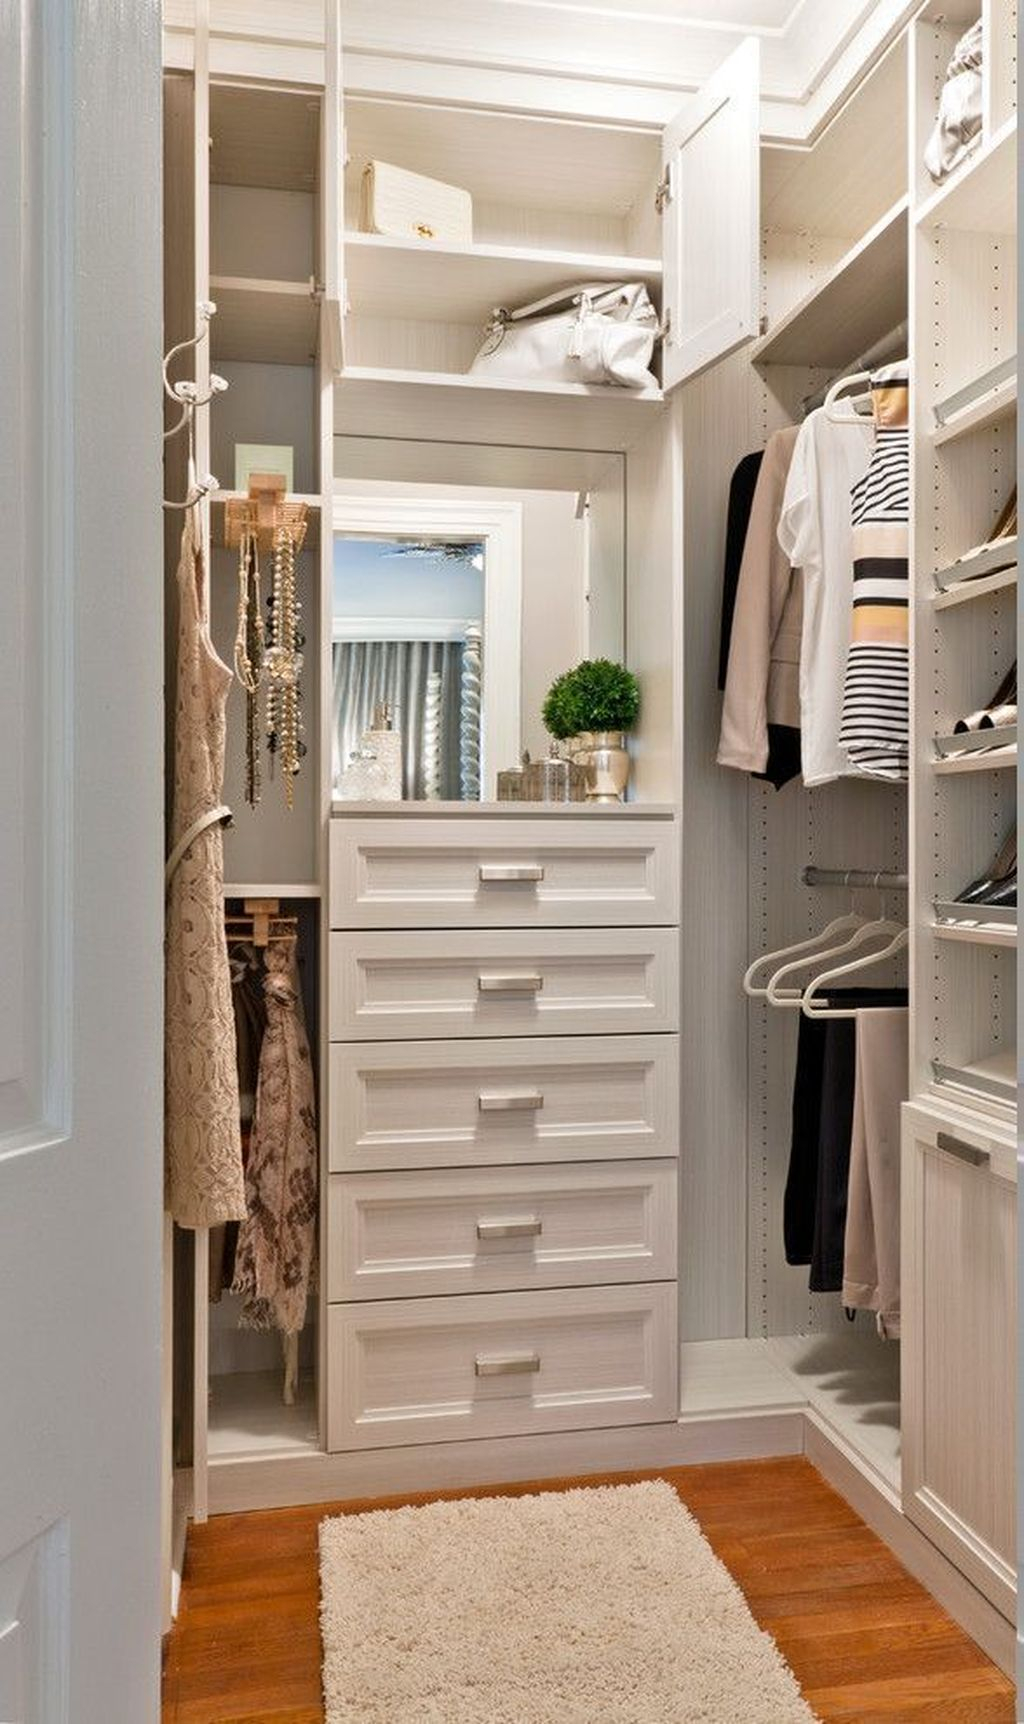 Splendid Wardrobe Design Ideas That You Can Try Current 20